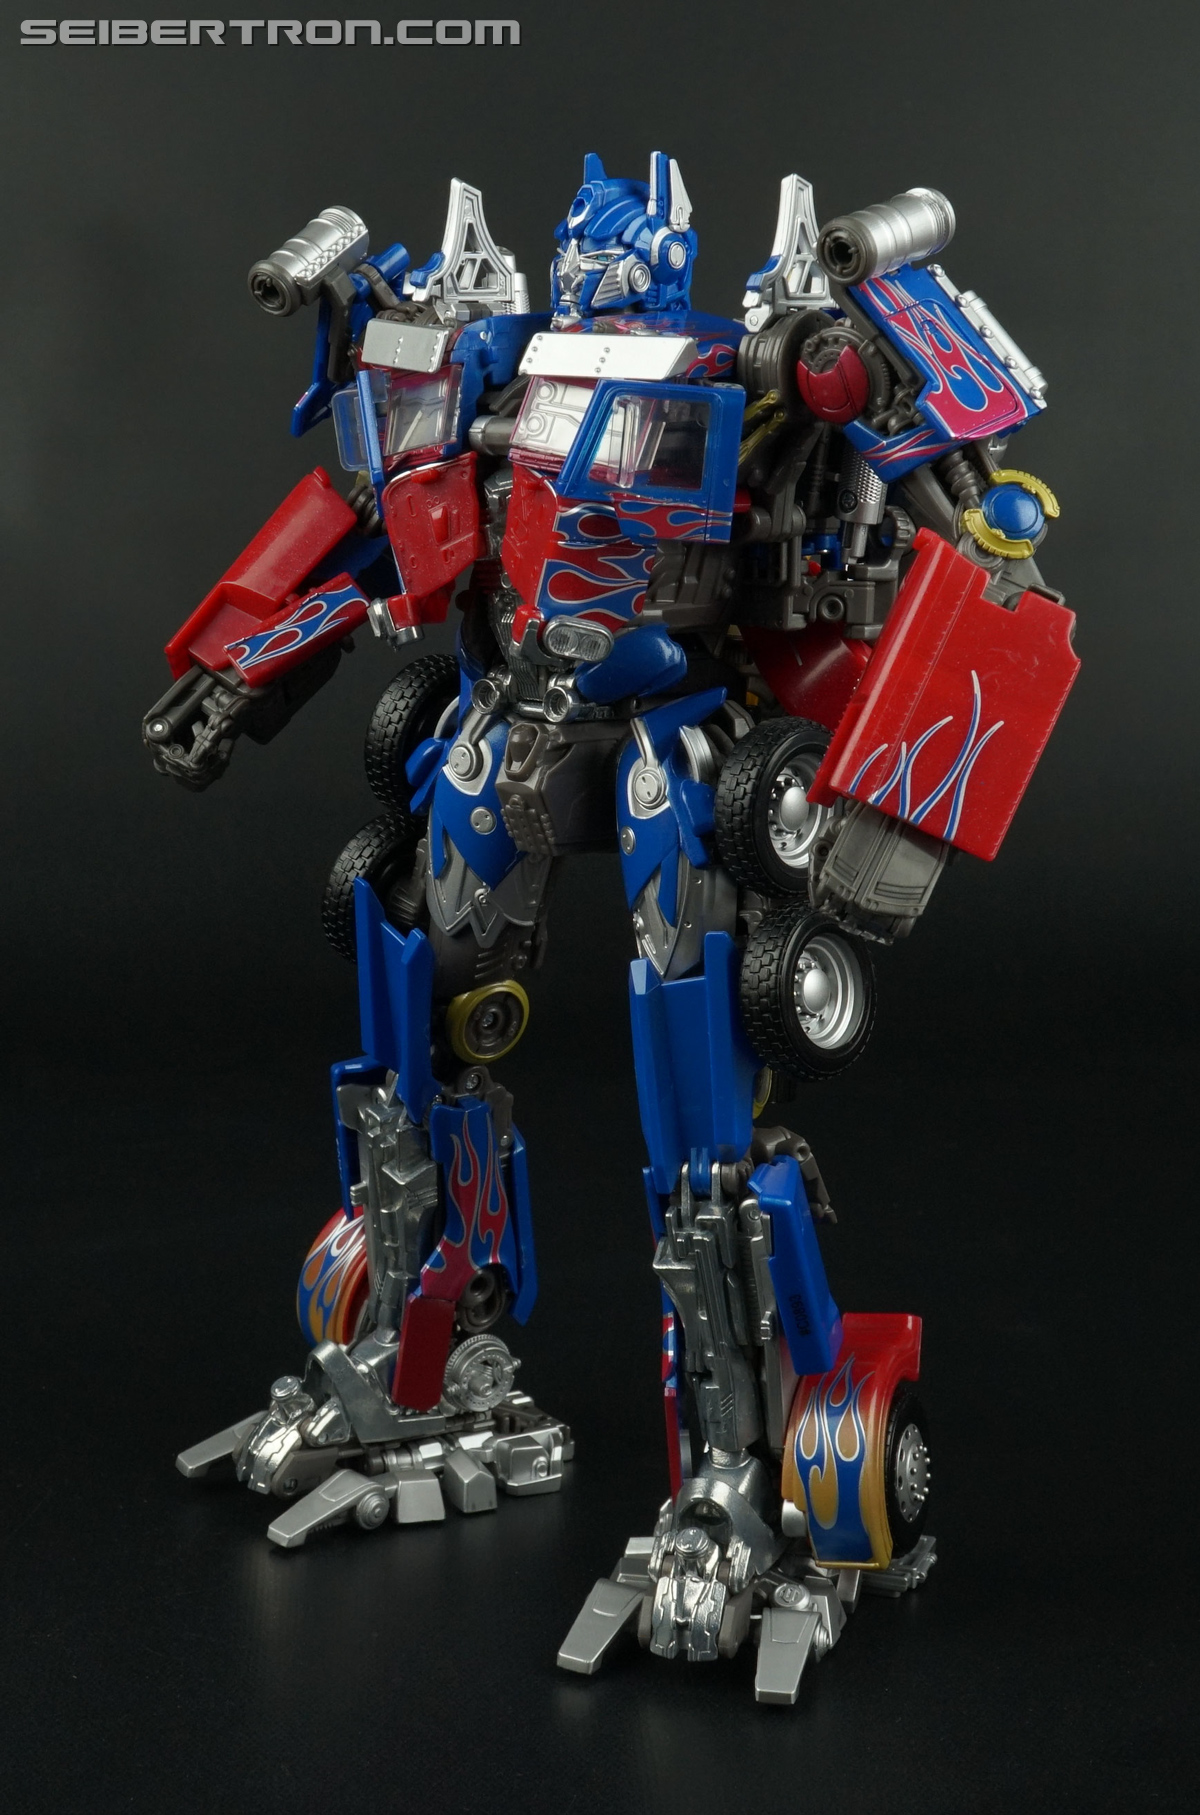 Transformers Masterpiece Movie Series Optimus Prime (Image #184 of 270)